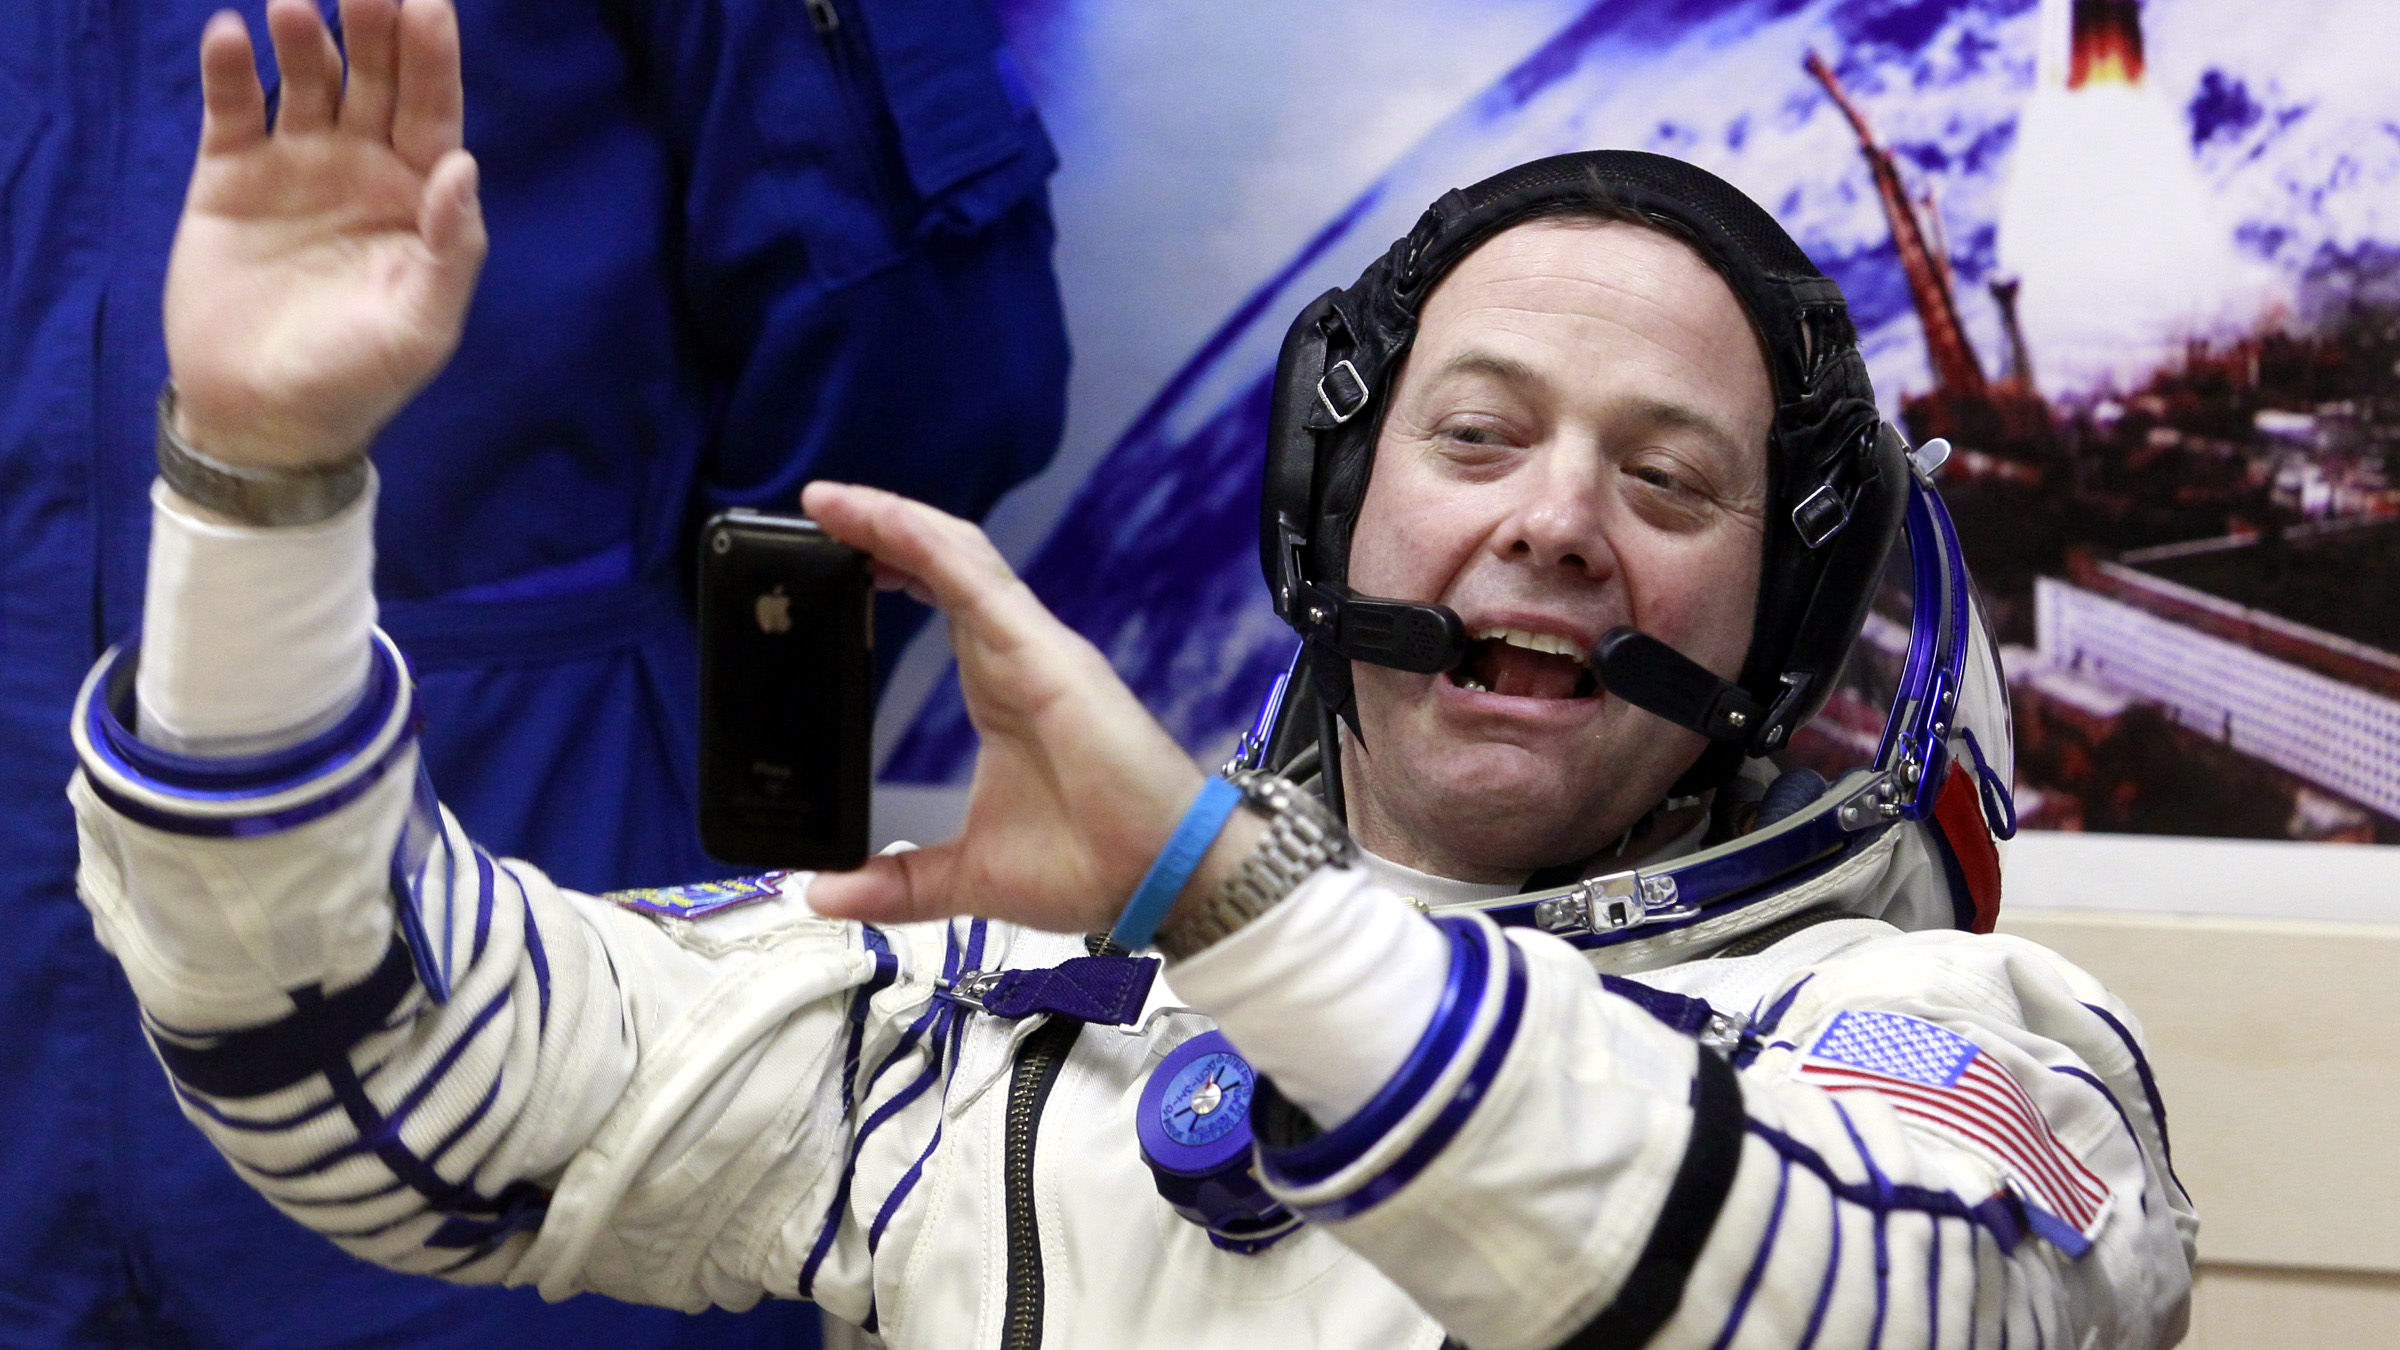 U.S. astronaut Ron Garan, crew member of the mission to the International Space Station, ISS, takes a photo of himself by mobile phone prior to the launch of Soyuz-FG rocket at the Russian leased Baikonur cosmodrome, Kazakhstan, Tuesday, April 5, 2011.